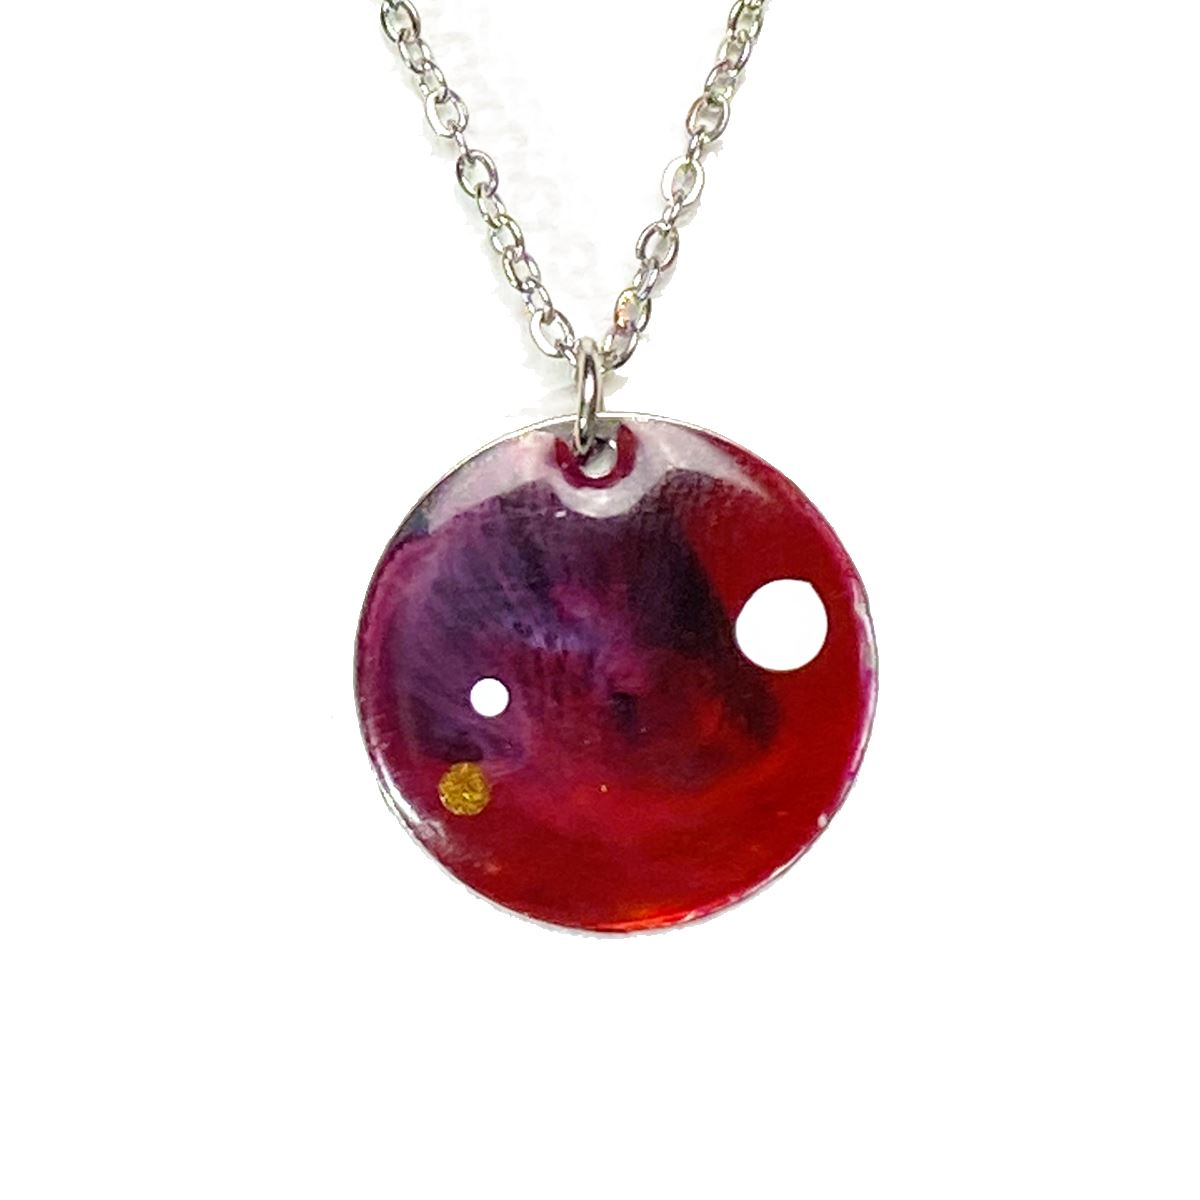 Color Study - medium red with white dots necklace necklace Deanna Dot Store